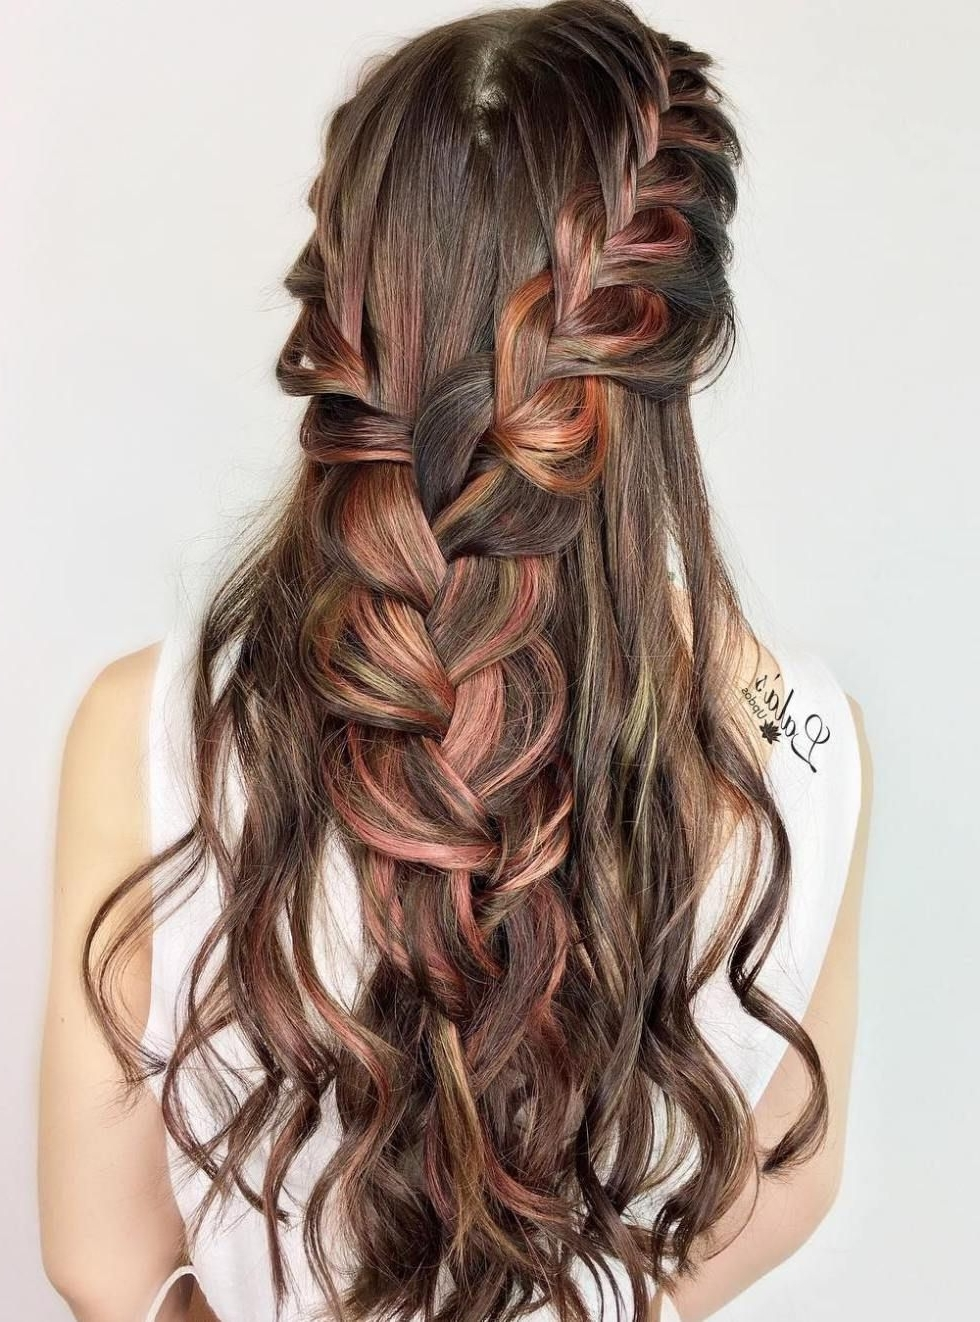 Two Braids Into One Half Up Hairstyle (View 18 of 20)